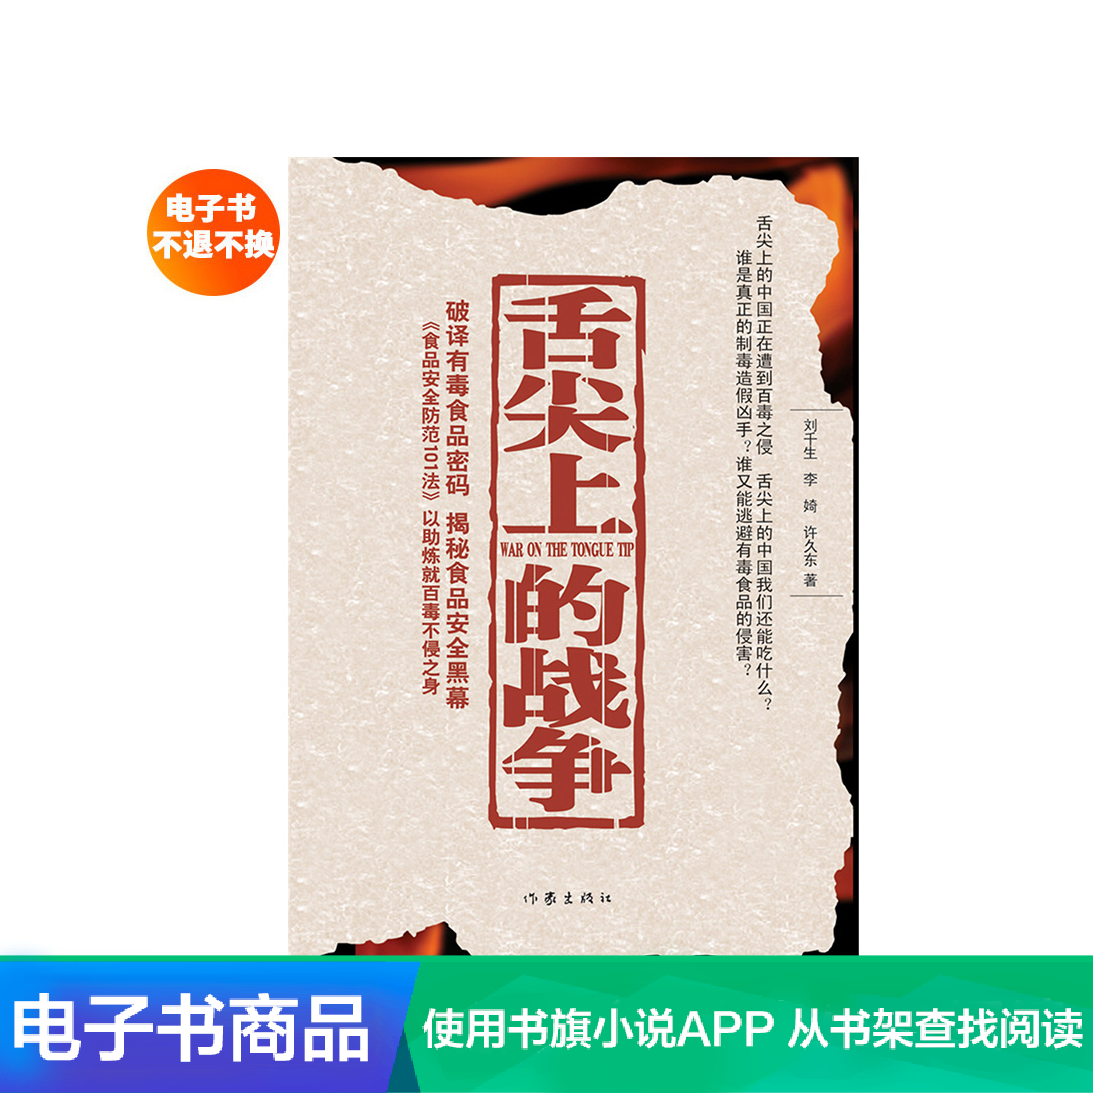 War on the tip of the tongue: Liu Qianshengs food safety case reveals documentary literature, e-book reading